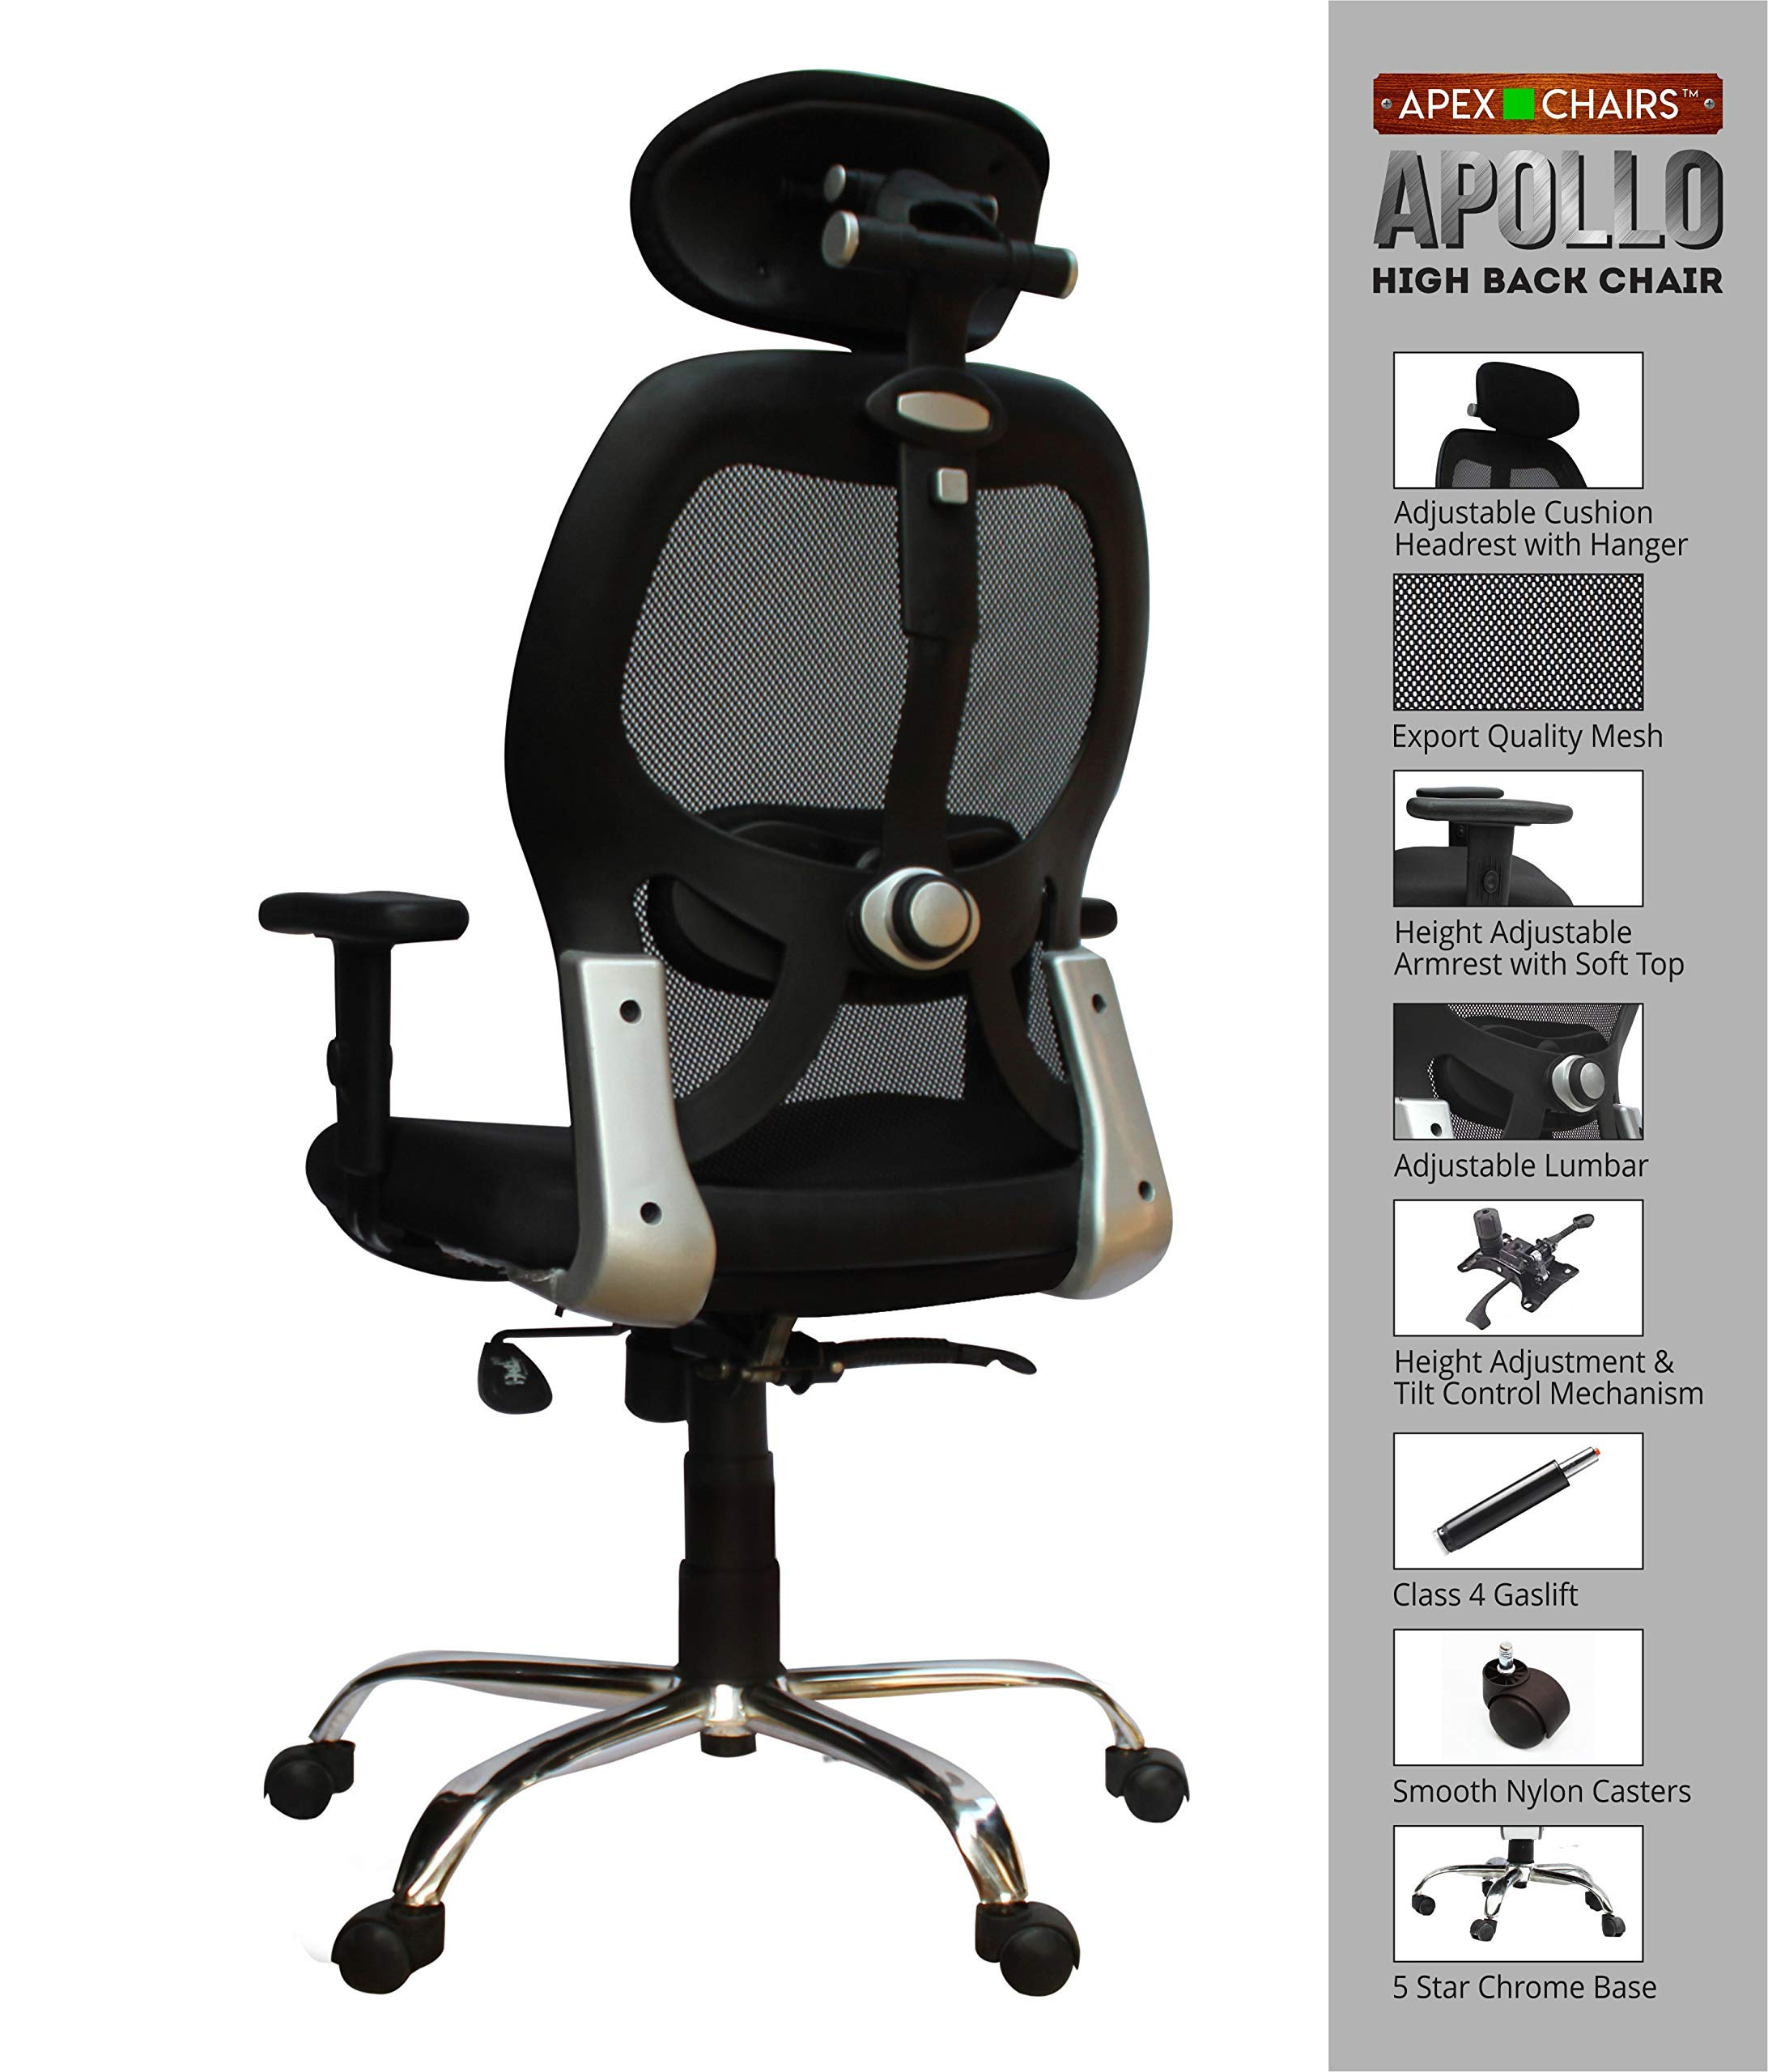 Amazon price history for APEX ChairsTM Apollo Chrome Base HIGH Back Office Chair (English)